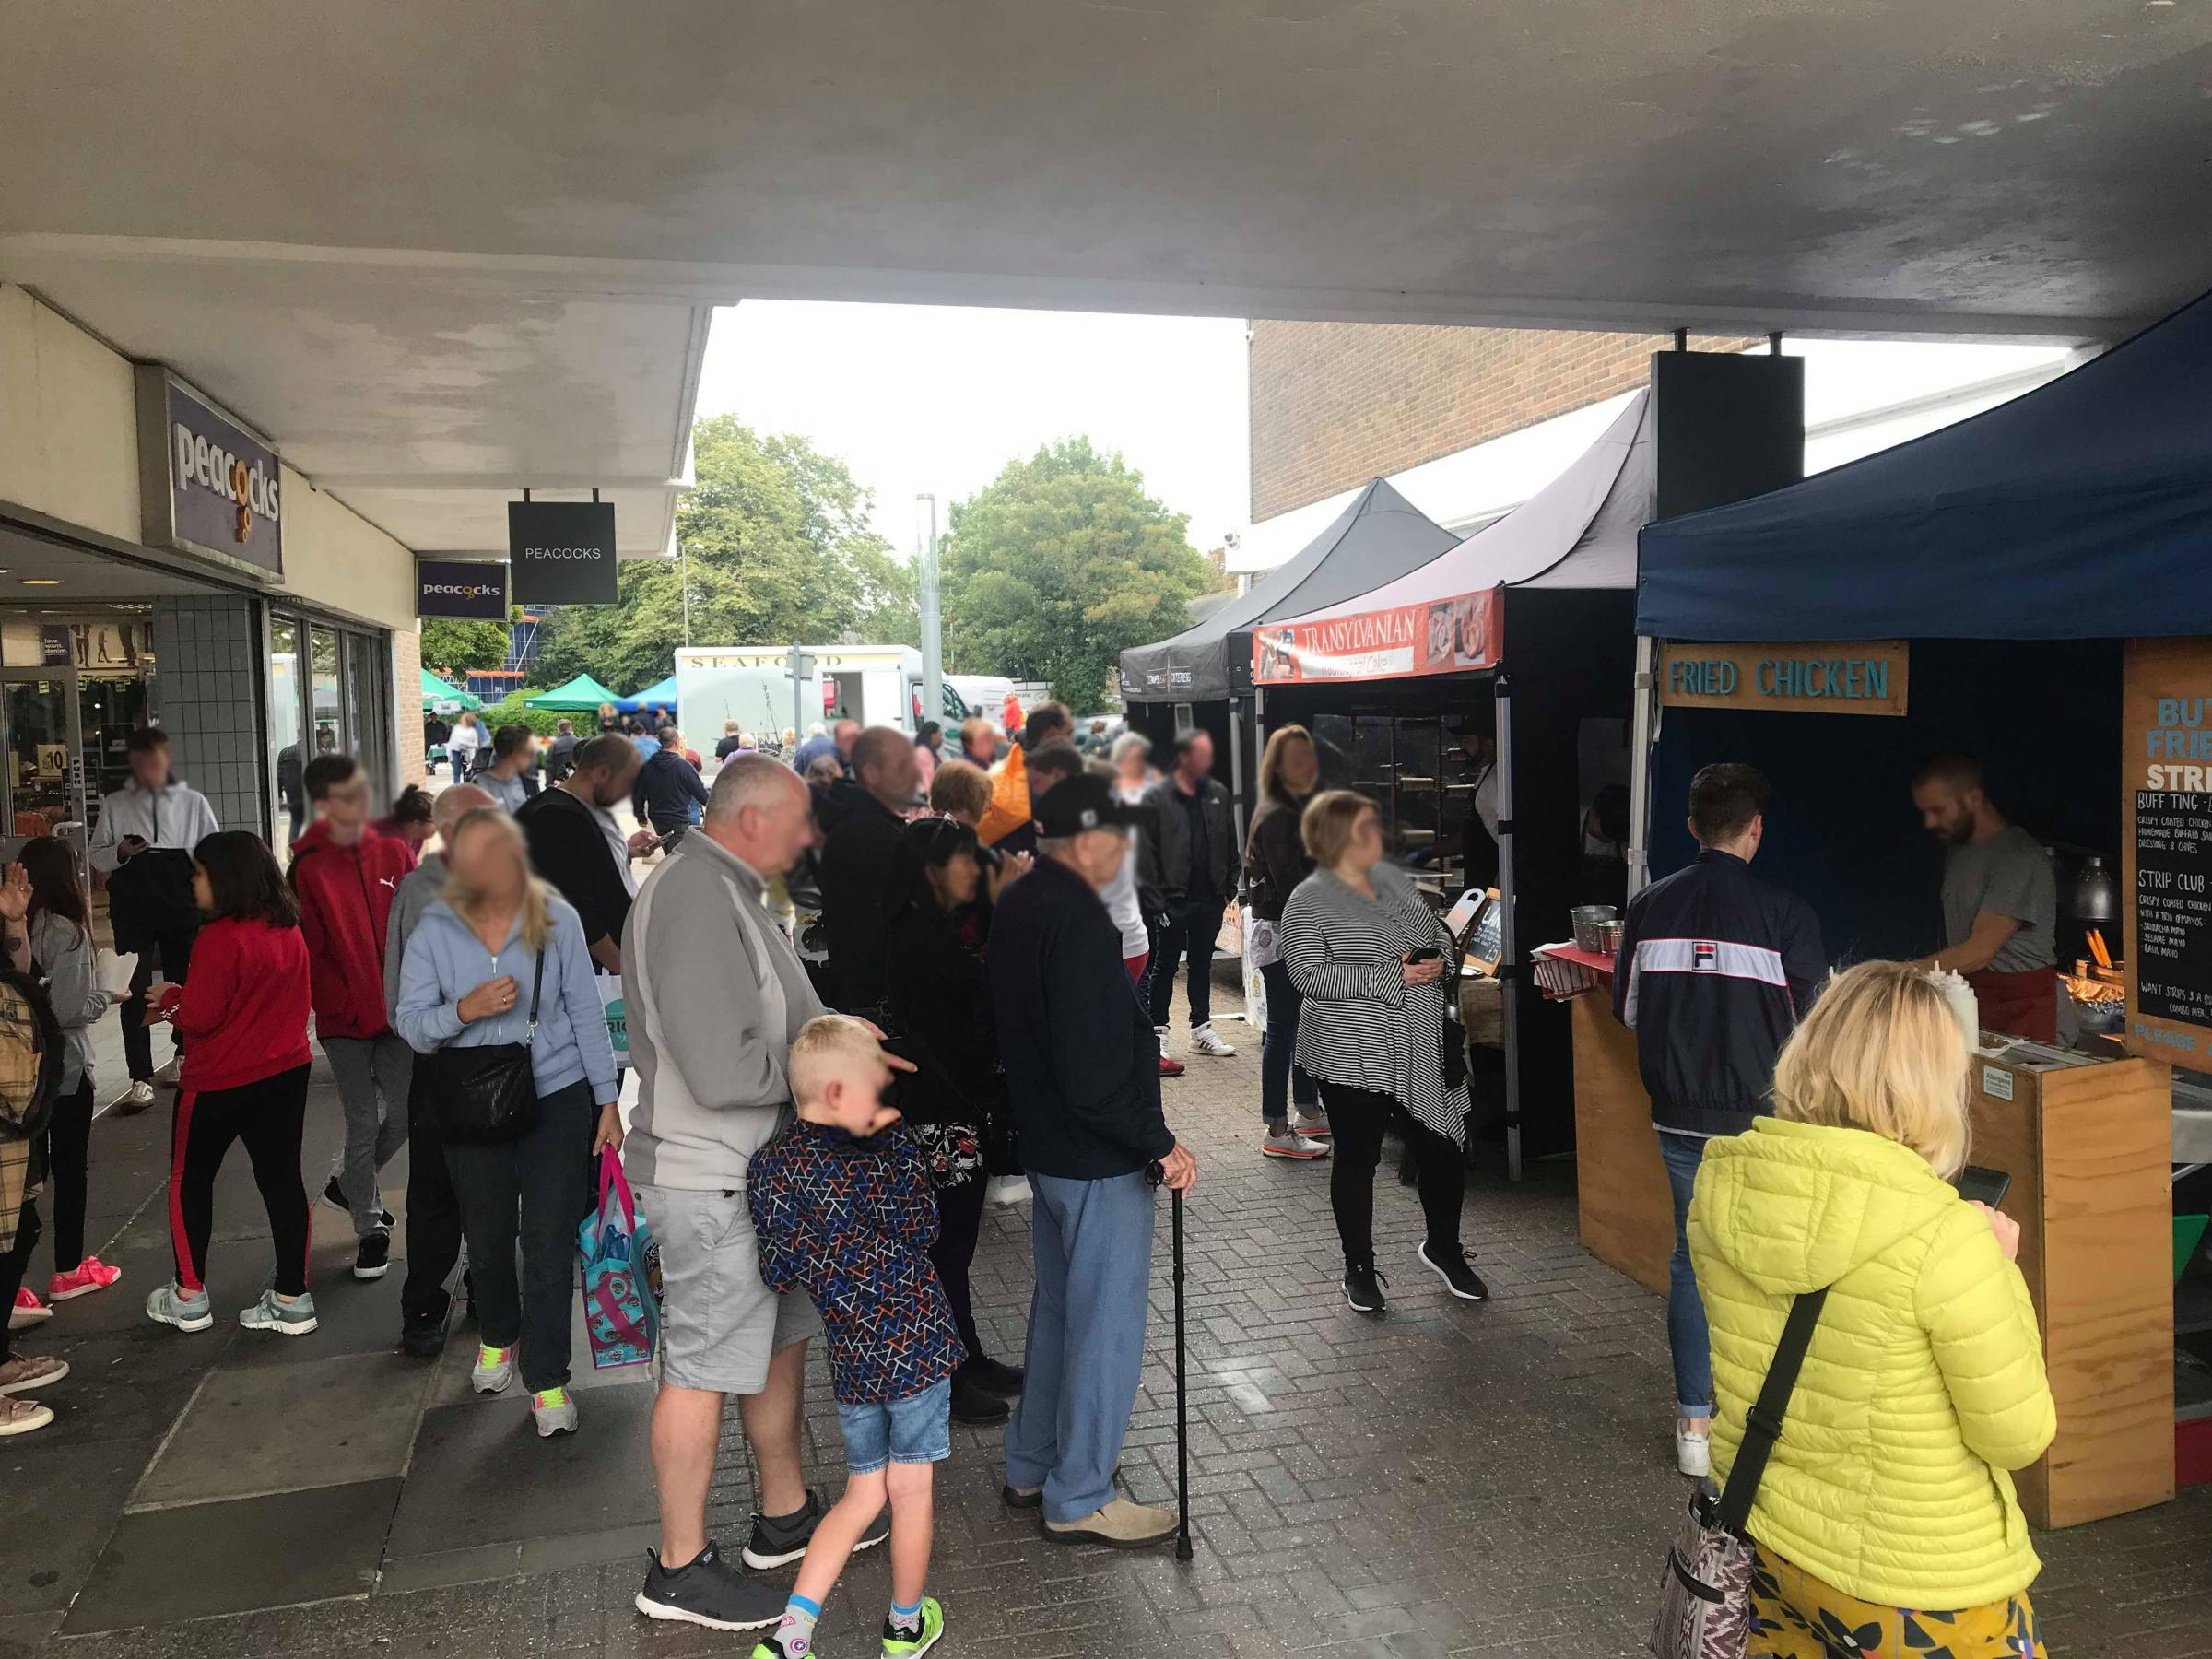 More shoppers: A view of a street market held in Witham last year